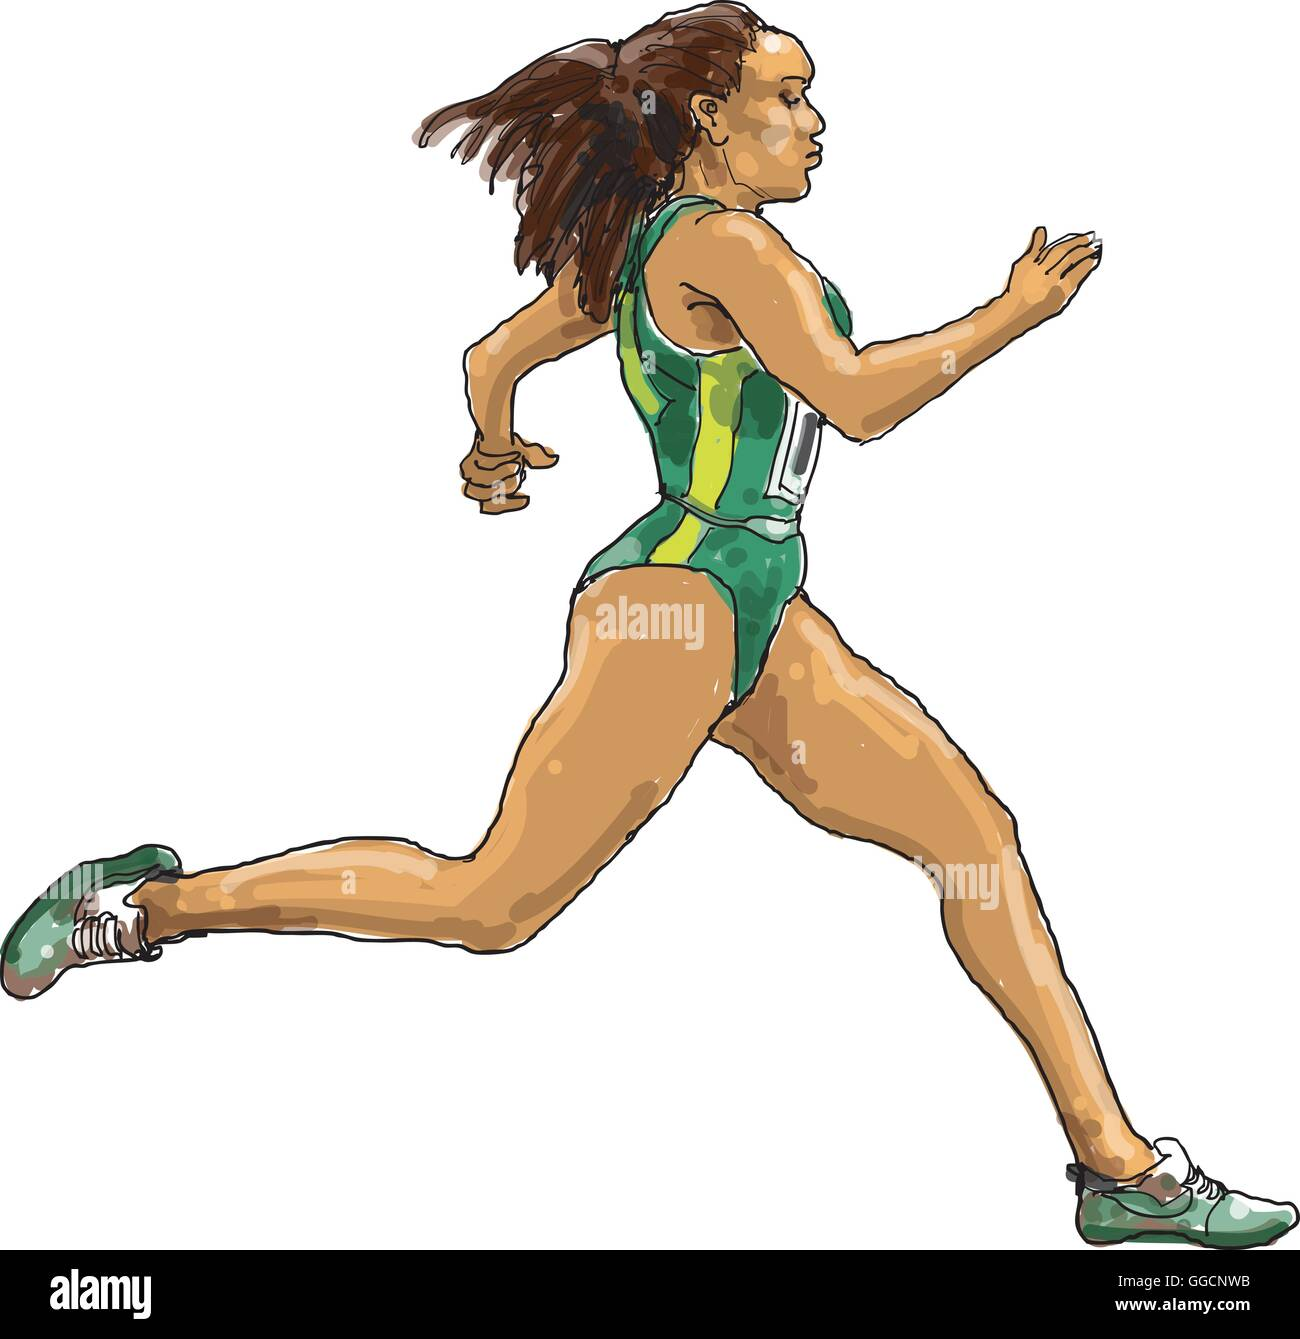 Running female athlete with green/ yellow clothes - Stock Vector